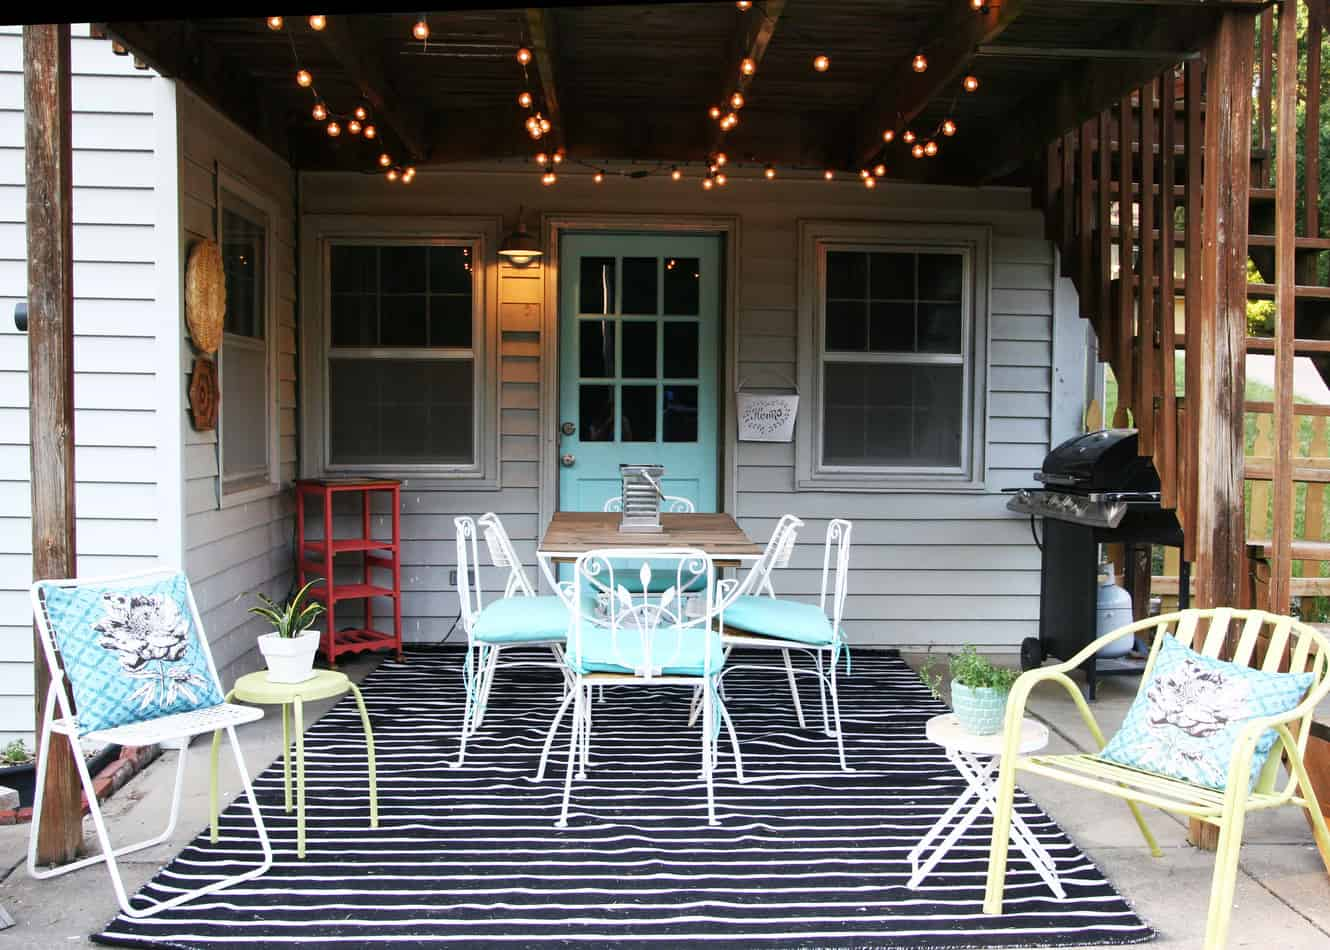 Patio Makeover On A Budget - Homemade Ginger on Backyard Patios On A Budget id=32286